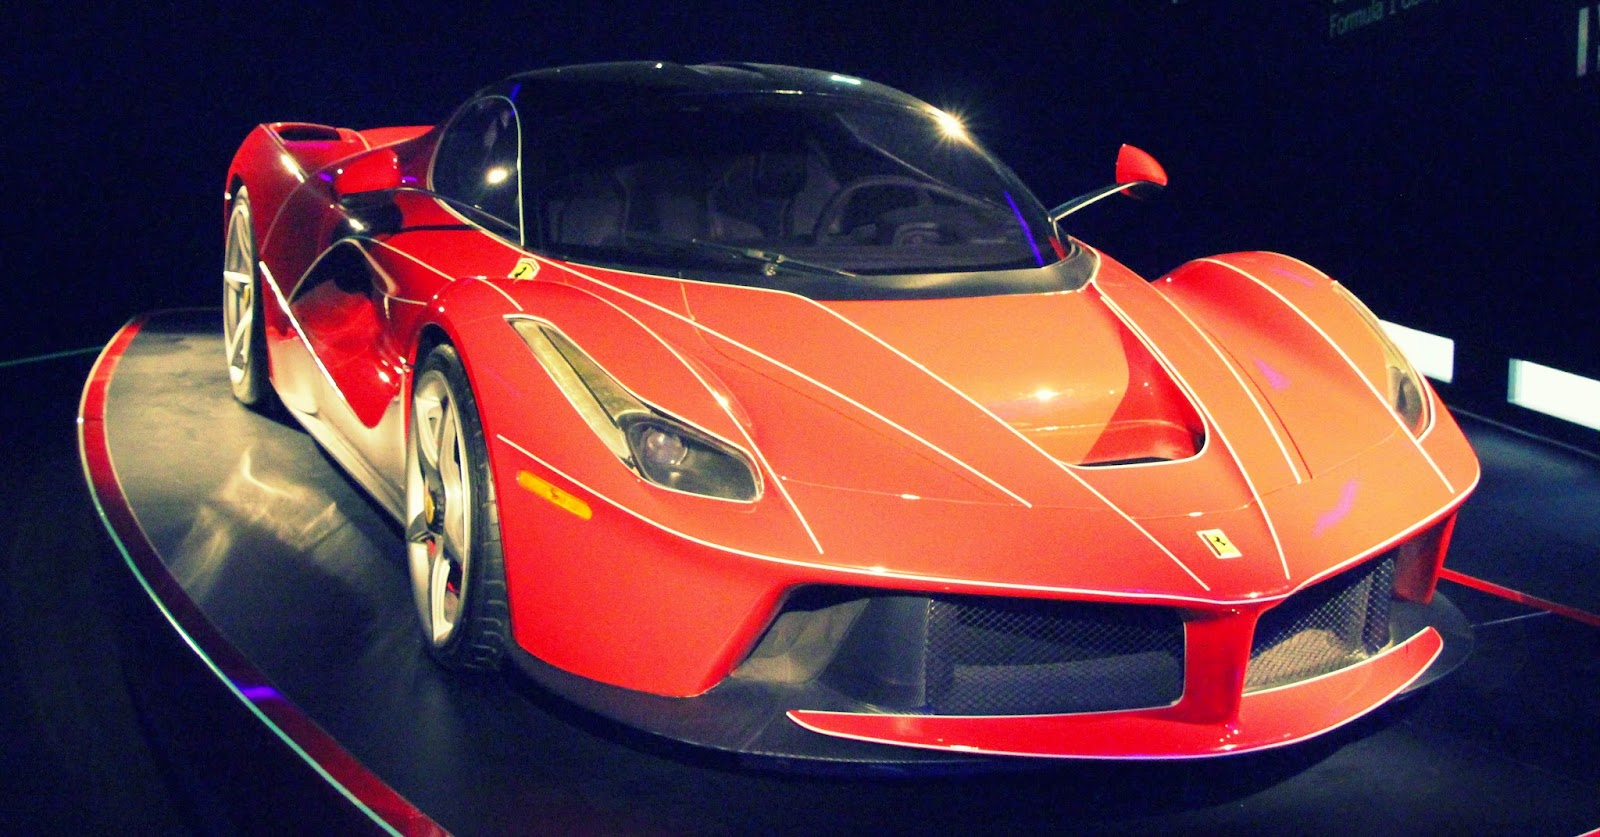 La Ferrari at the Ferrari Museum, Maranello, Italy